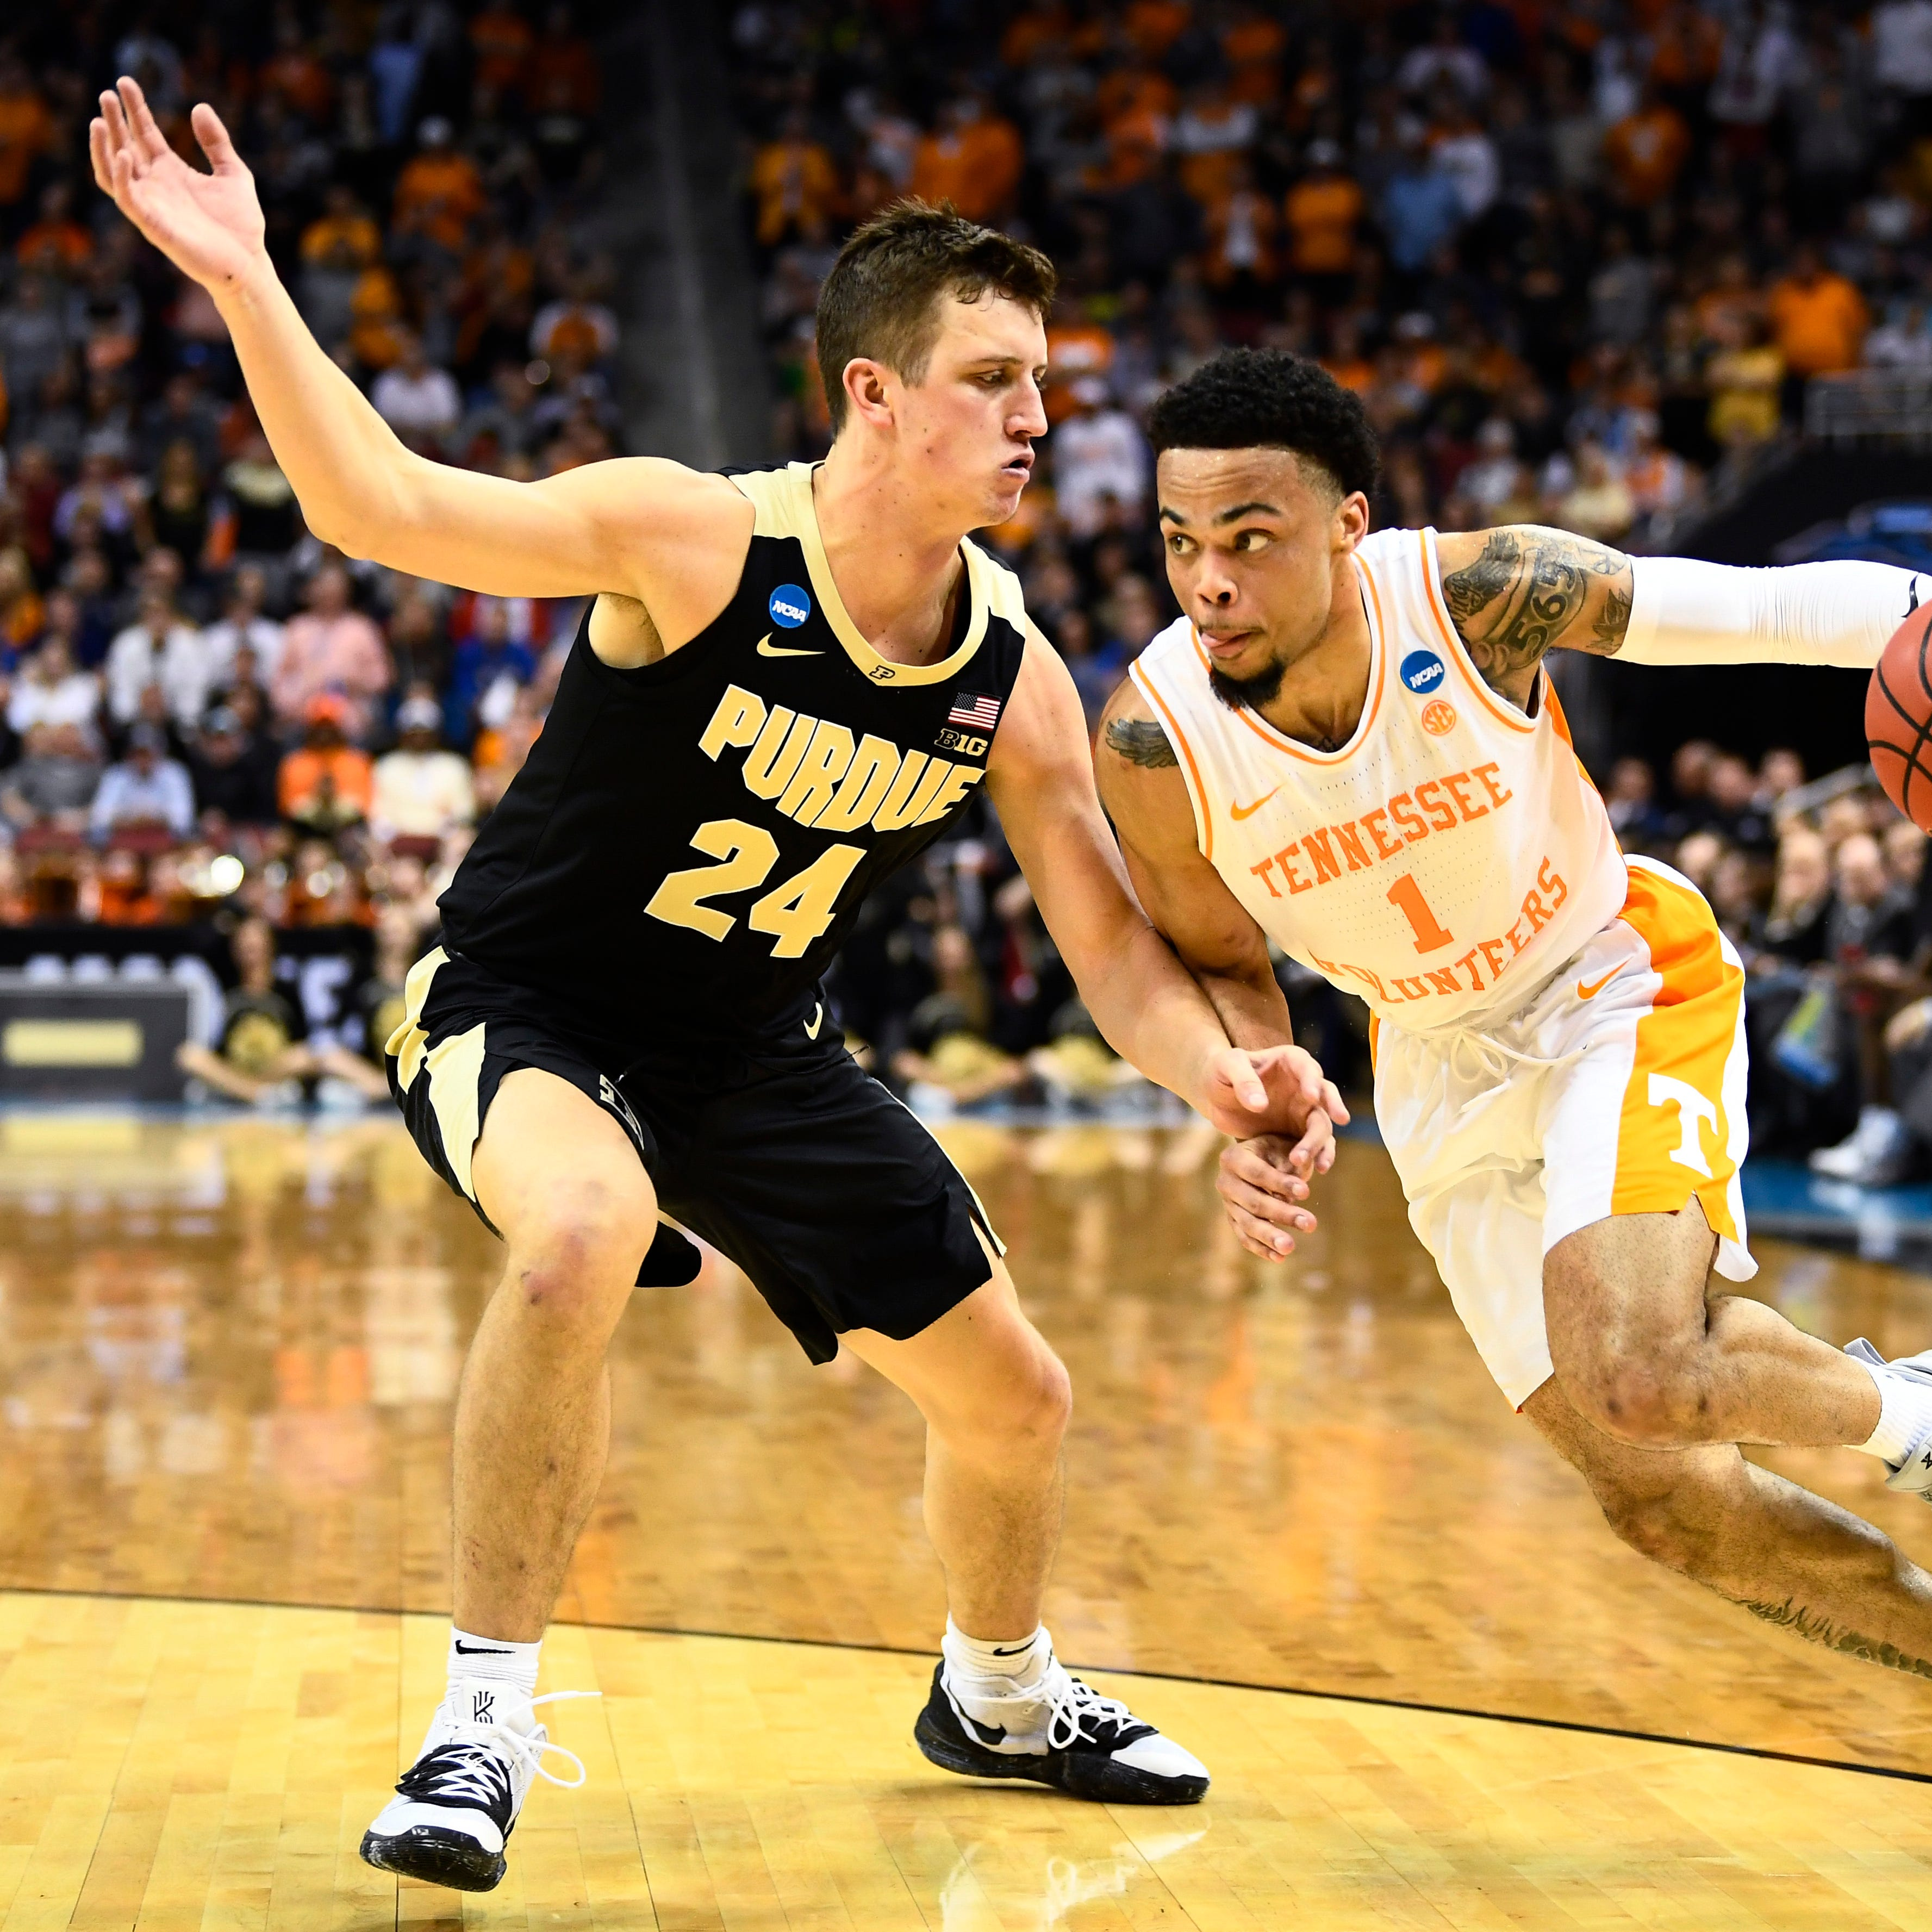 Guard play could enable Tennessee to thrive despite loss of Grant Williams